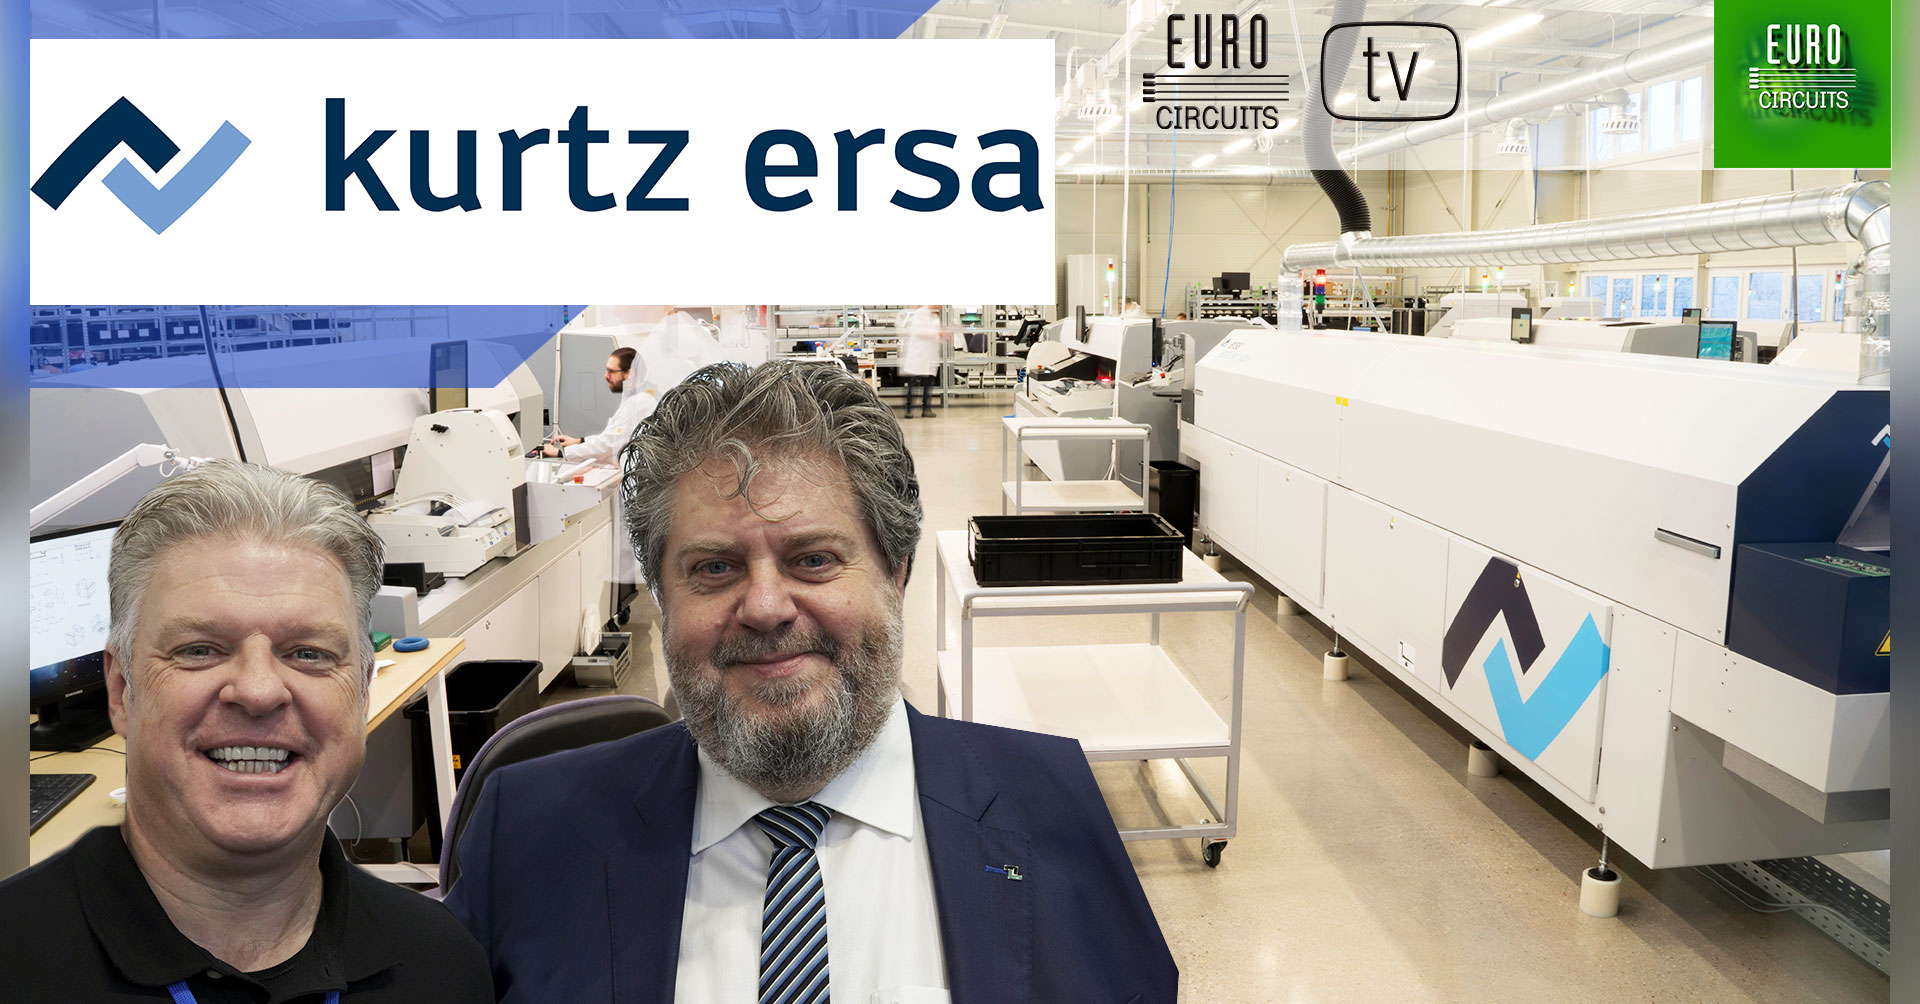 Our reflow ovens come from Kurtz Ersa